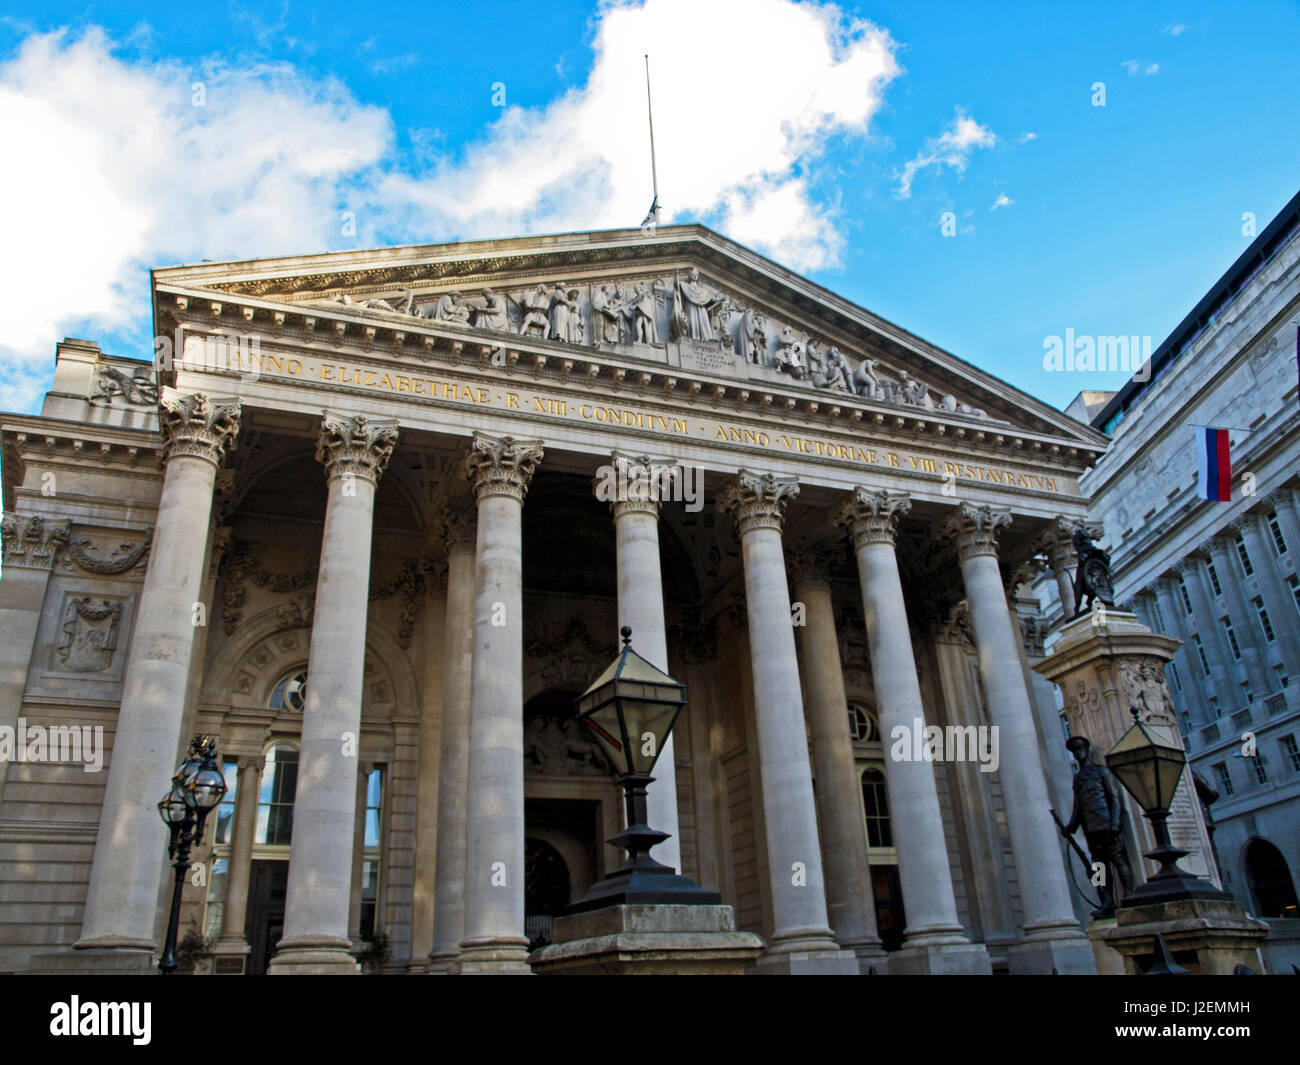 Europe, United Kingdom, England, London, City of London. The Royal Exchange, designed by William Tite in the 1840's. - Stock Image